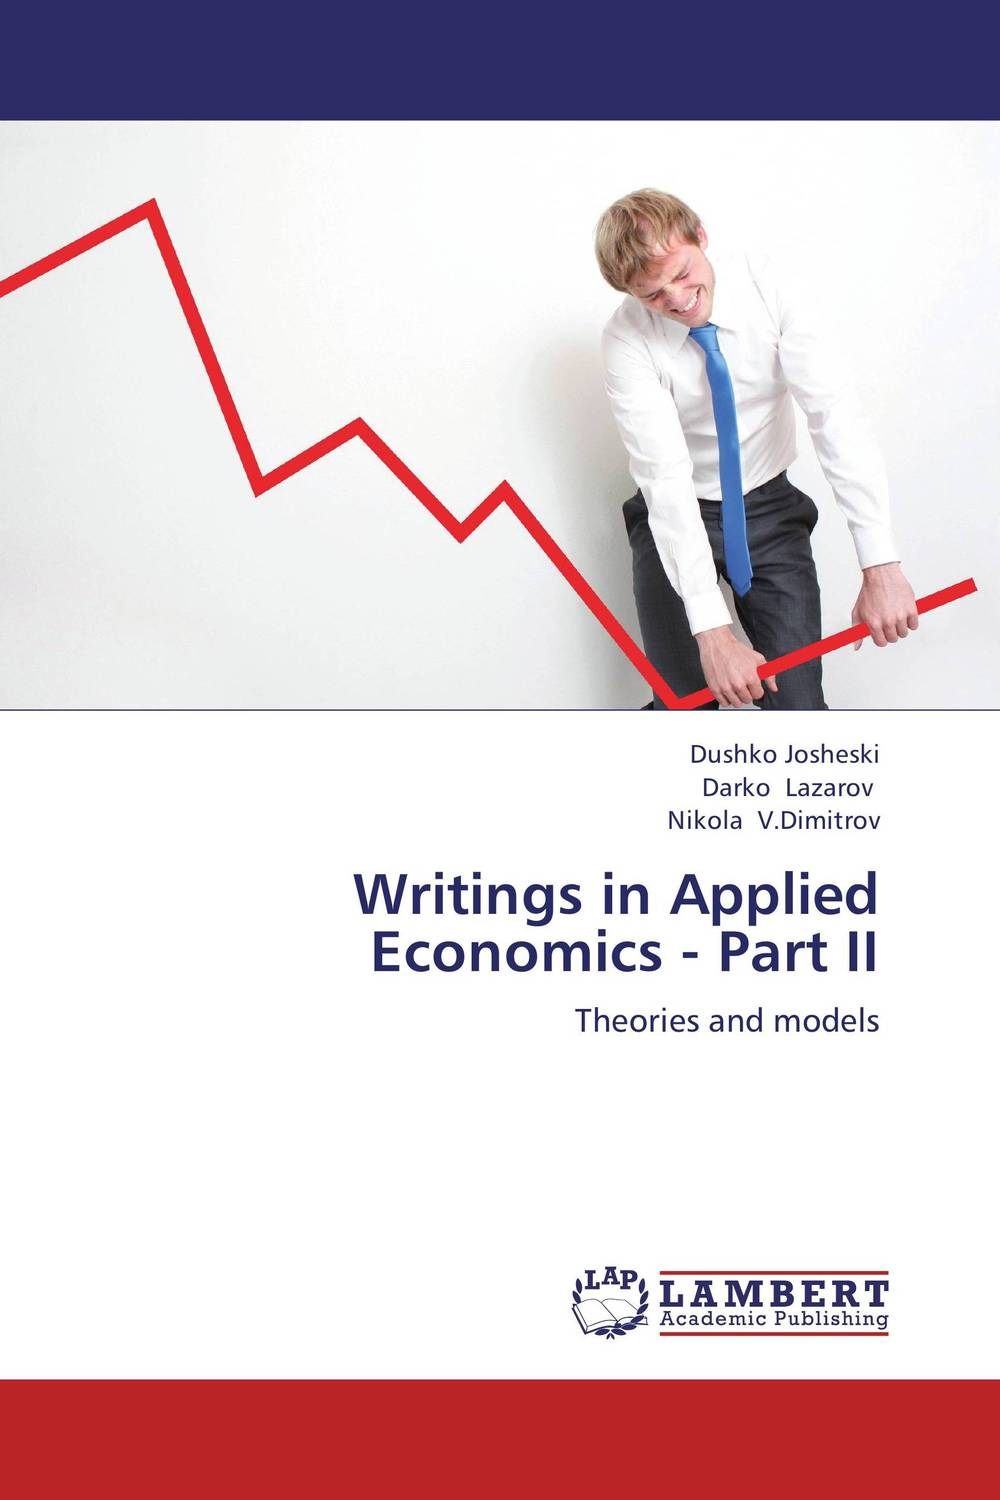 Writings in Applied Economics - Part II handbook of international economics 3